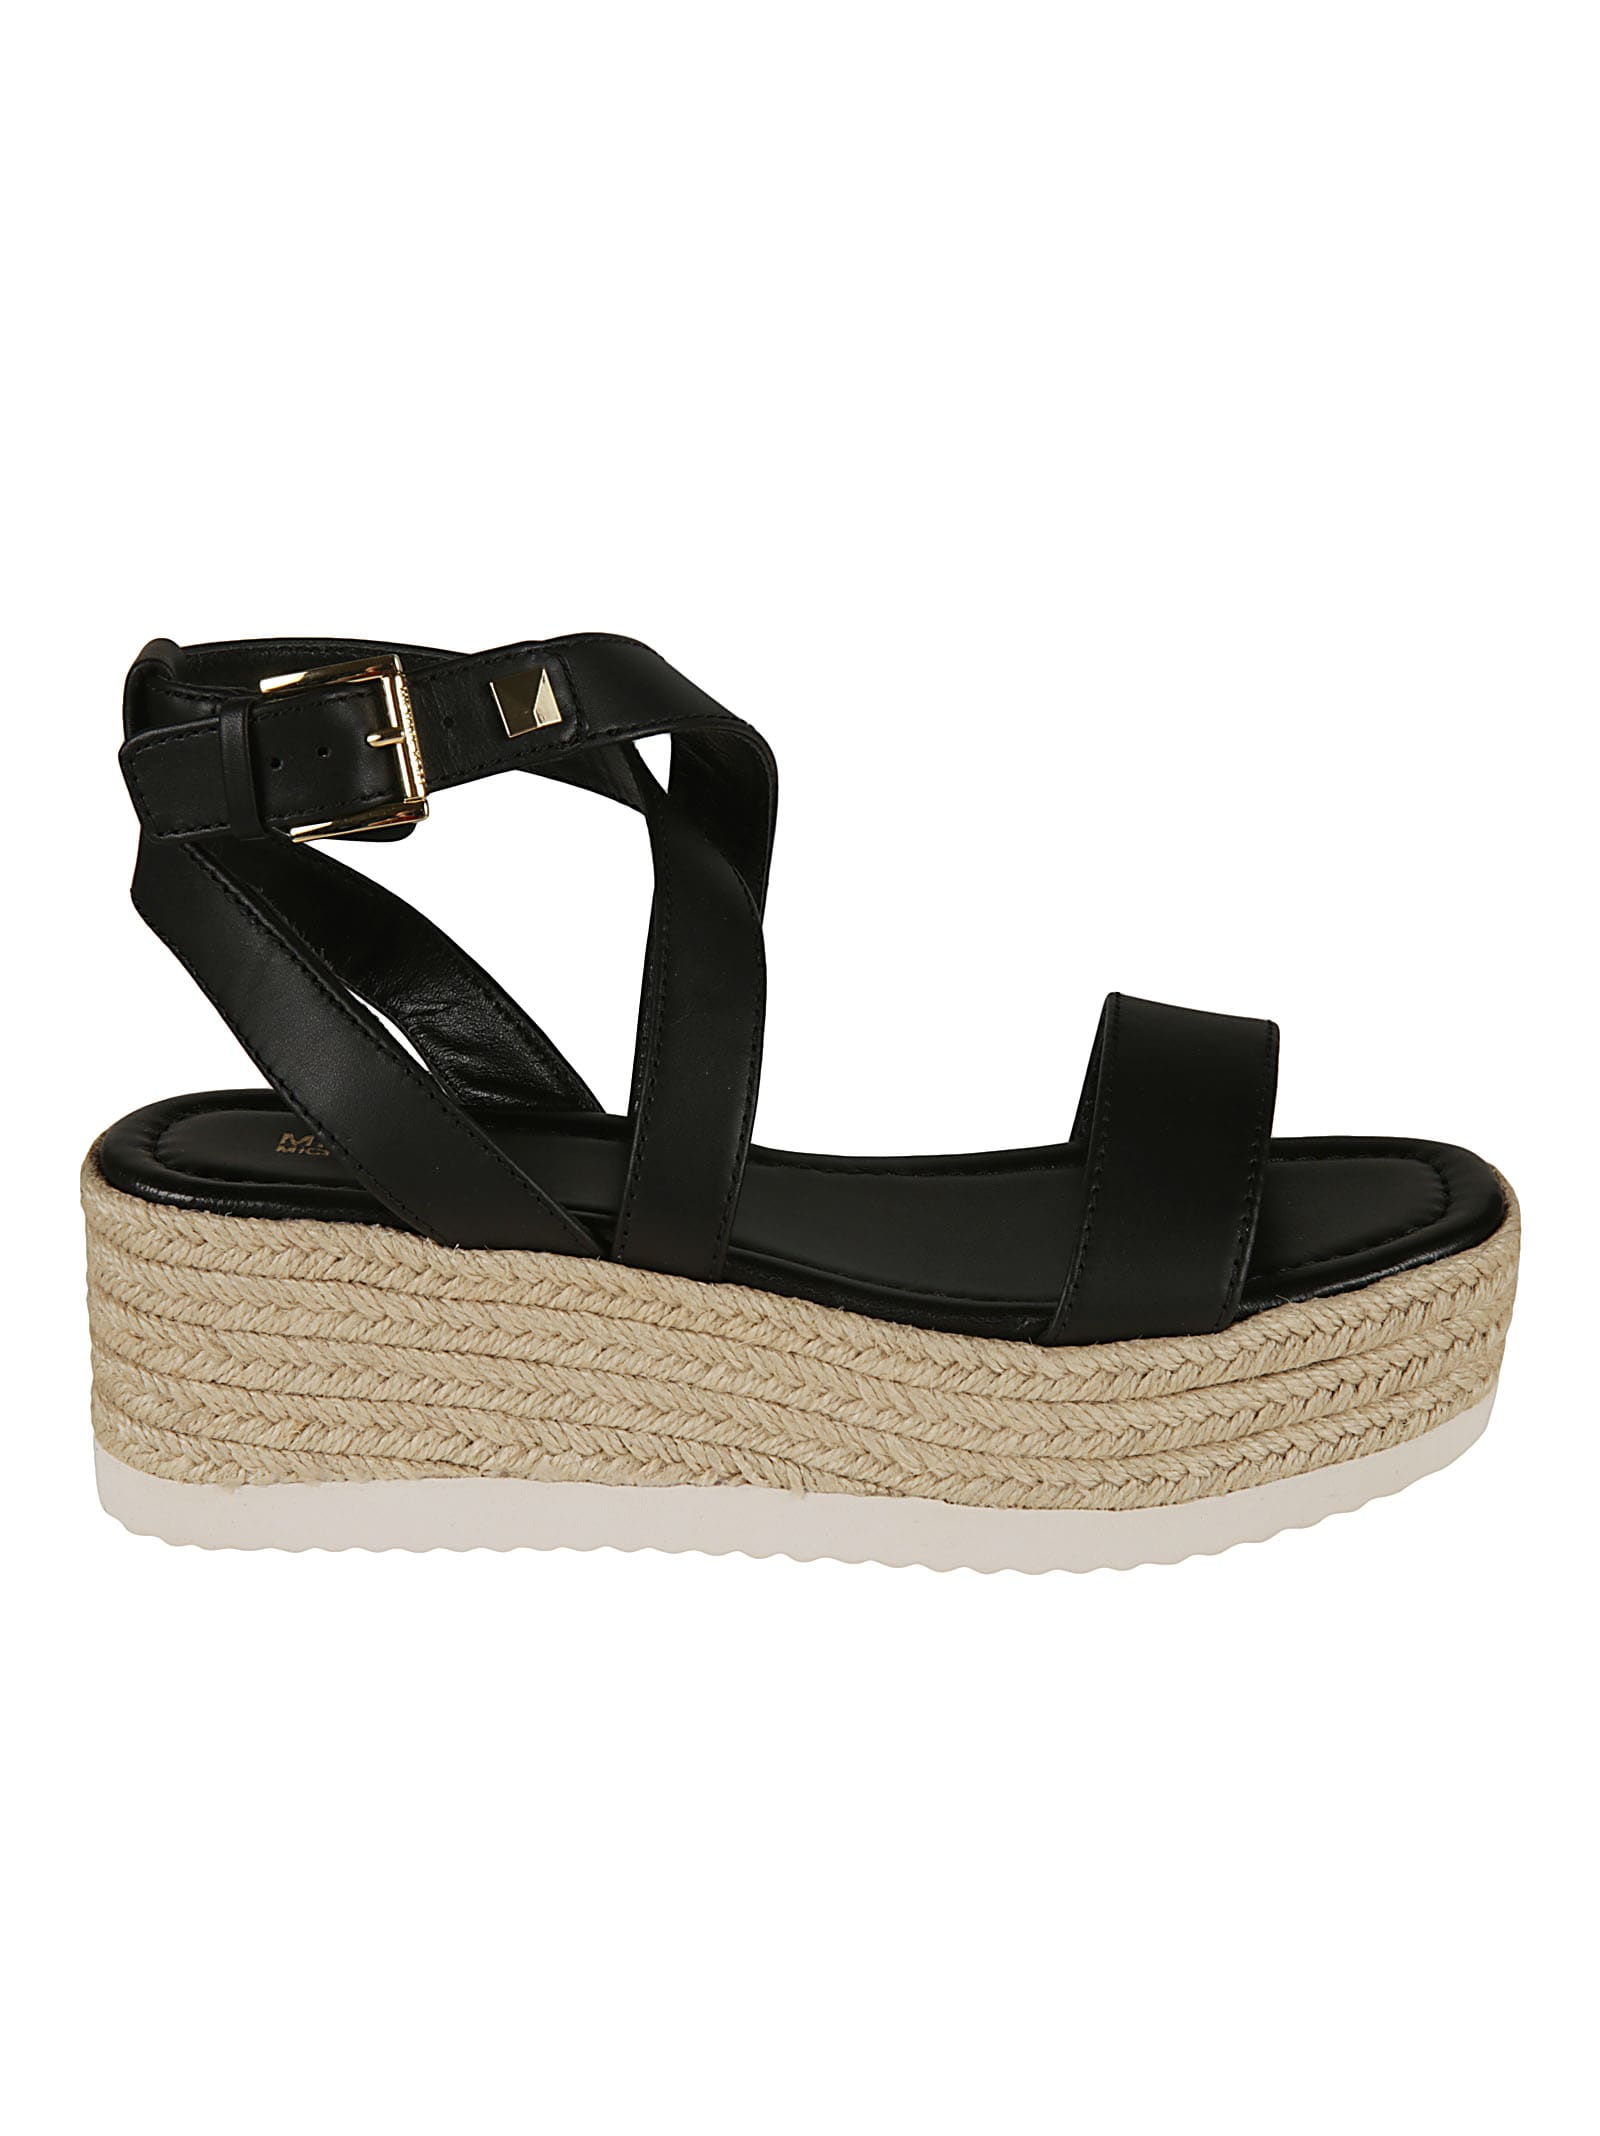 Michael Kors Leathers LOWRY WEDGE SANDALS